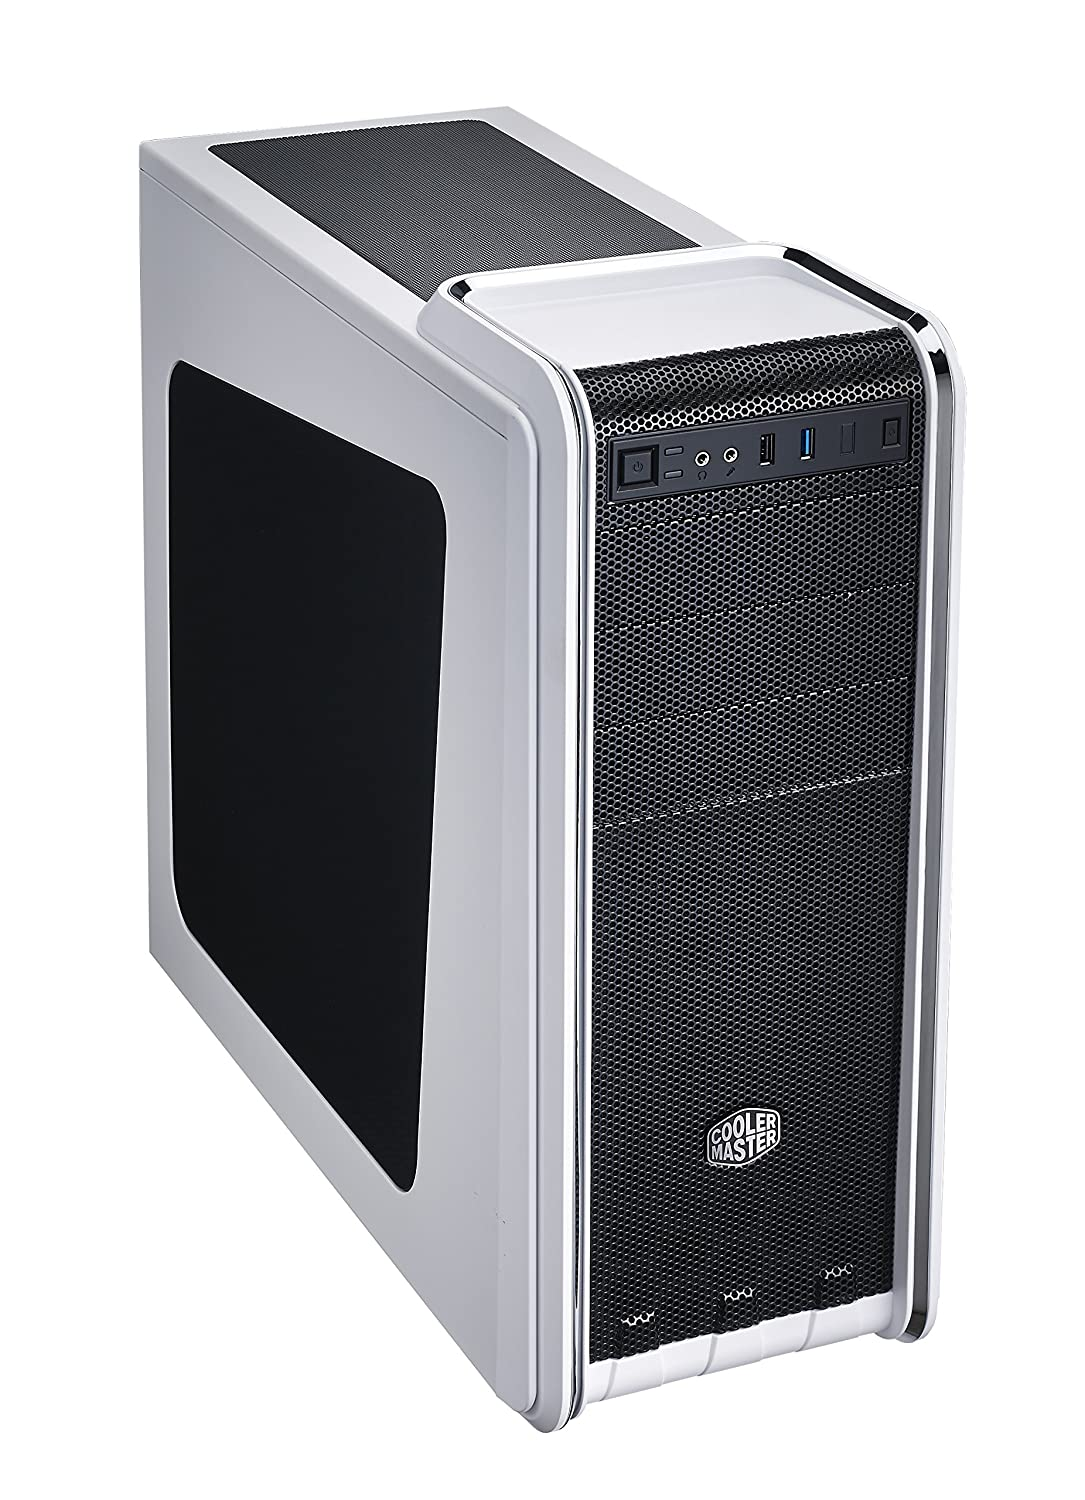 CASE CM 590 III WHITE WITH WINDOW 4719512053485 RC-593-WWN2 DAT_RC-593-WWN